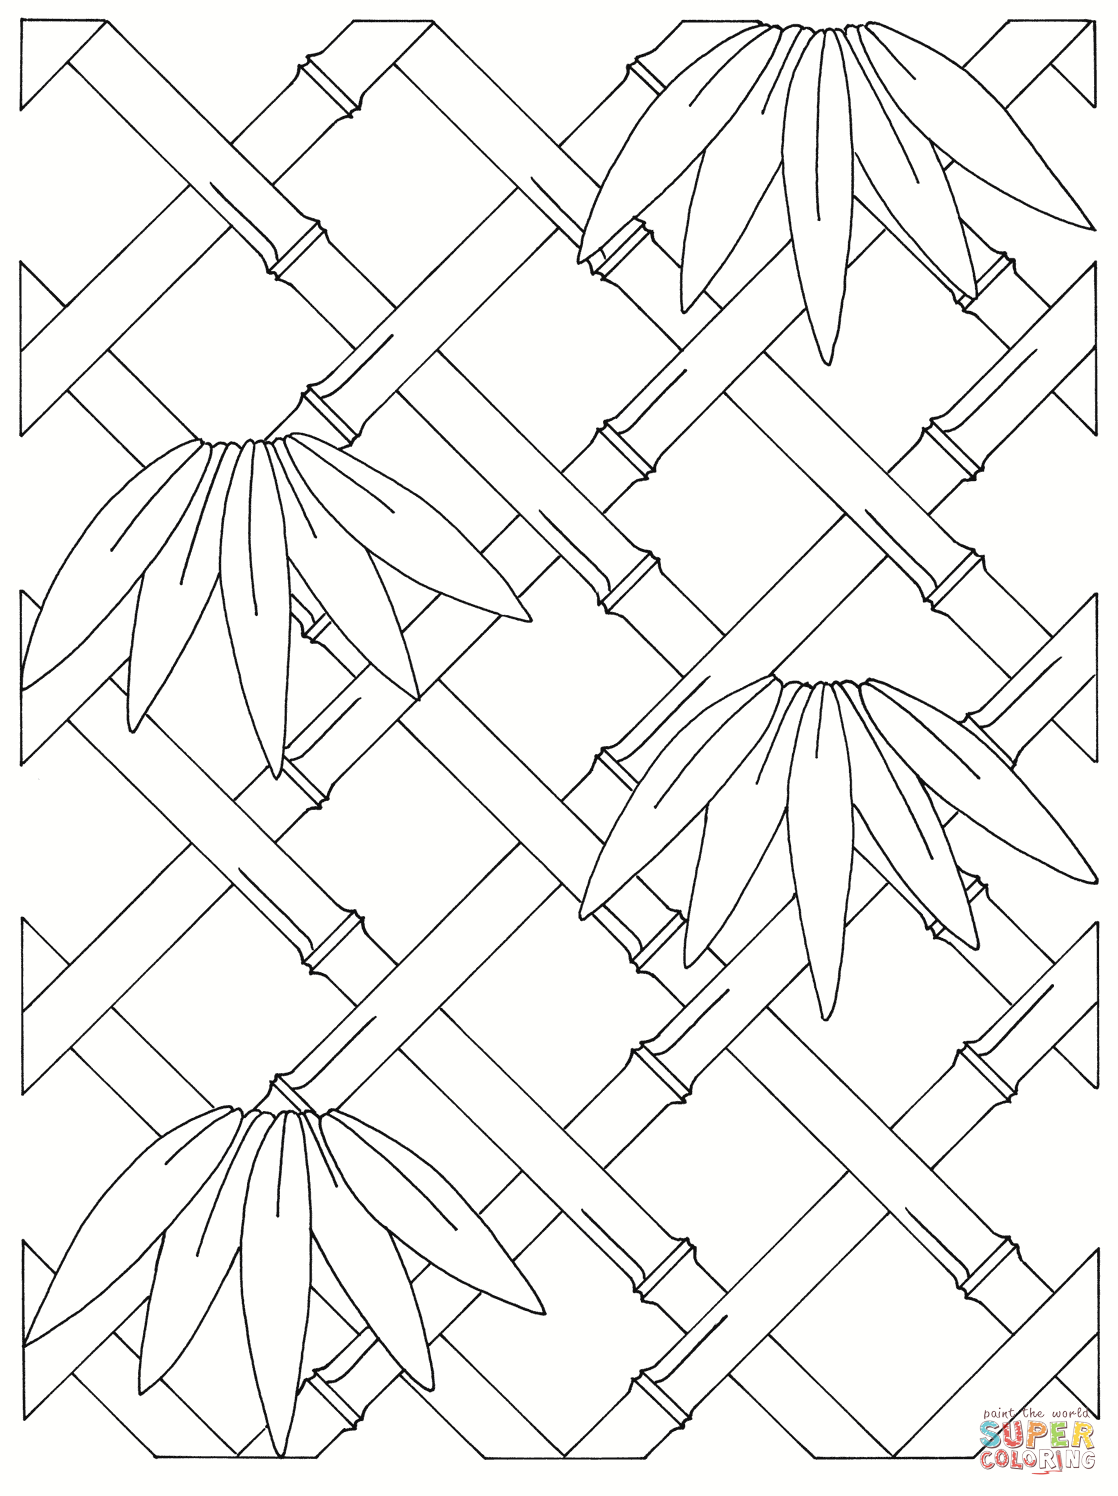 Terms Of Use >> Bamboo Coloring Page - Coloring Home